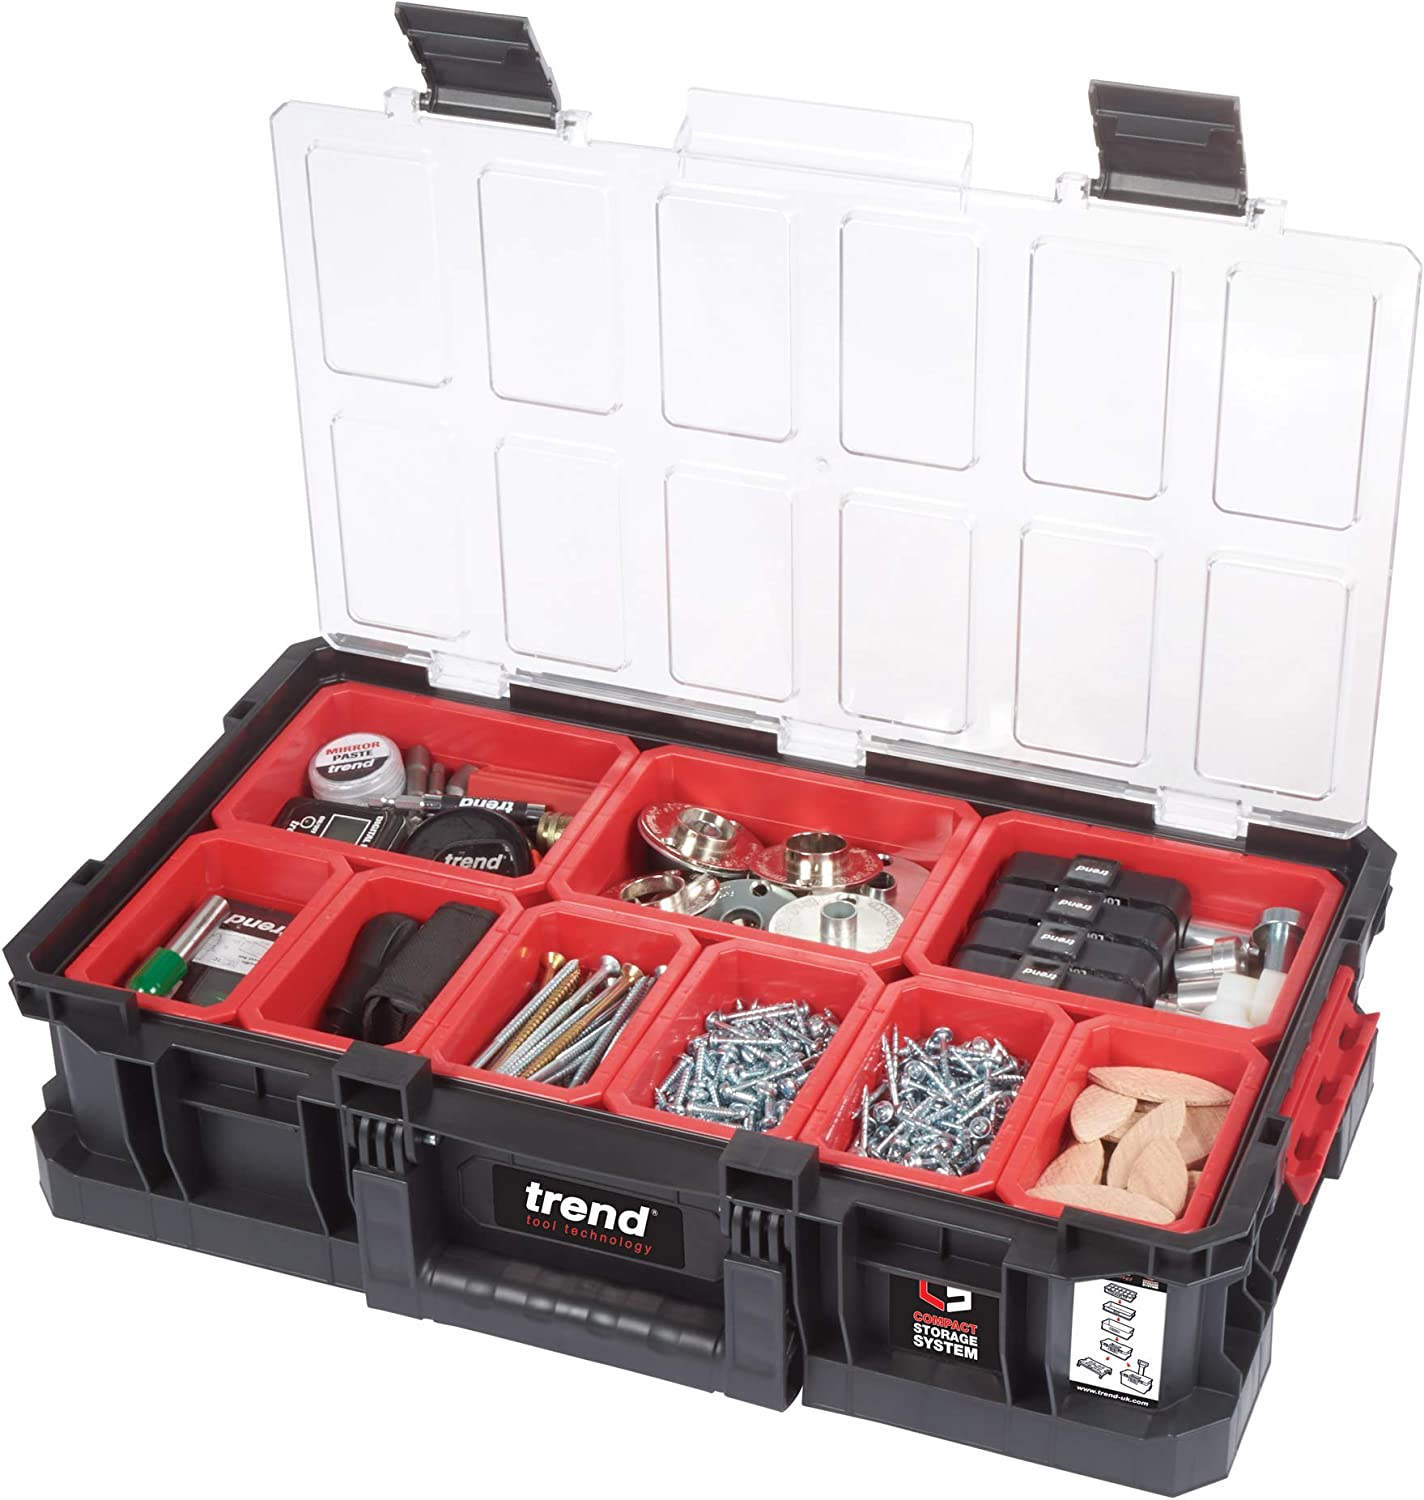 Trend Modular Storage Compact Tote 100mm